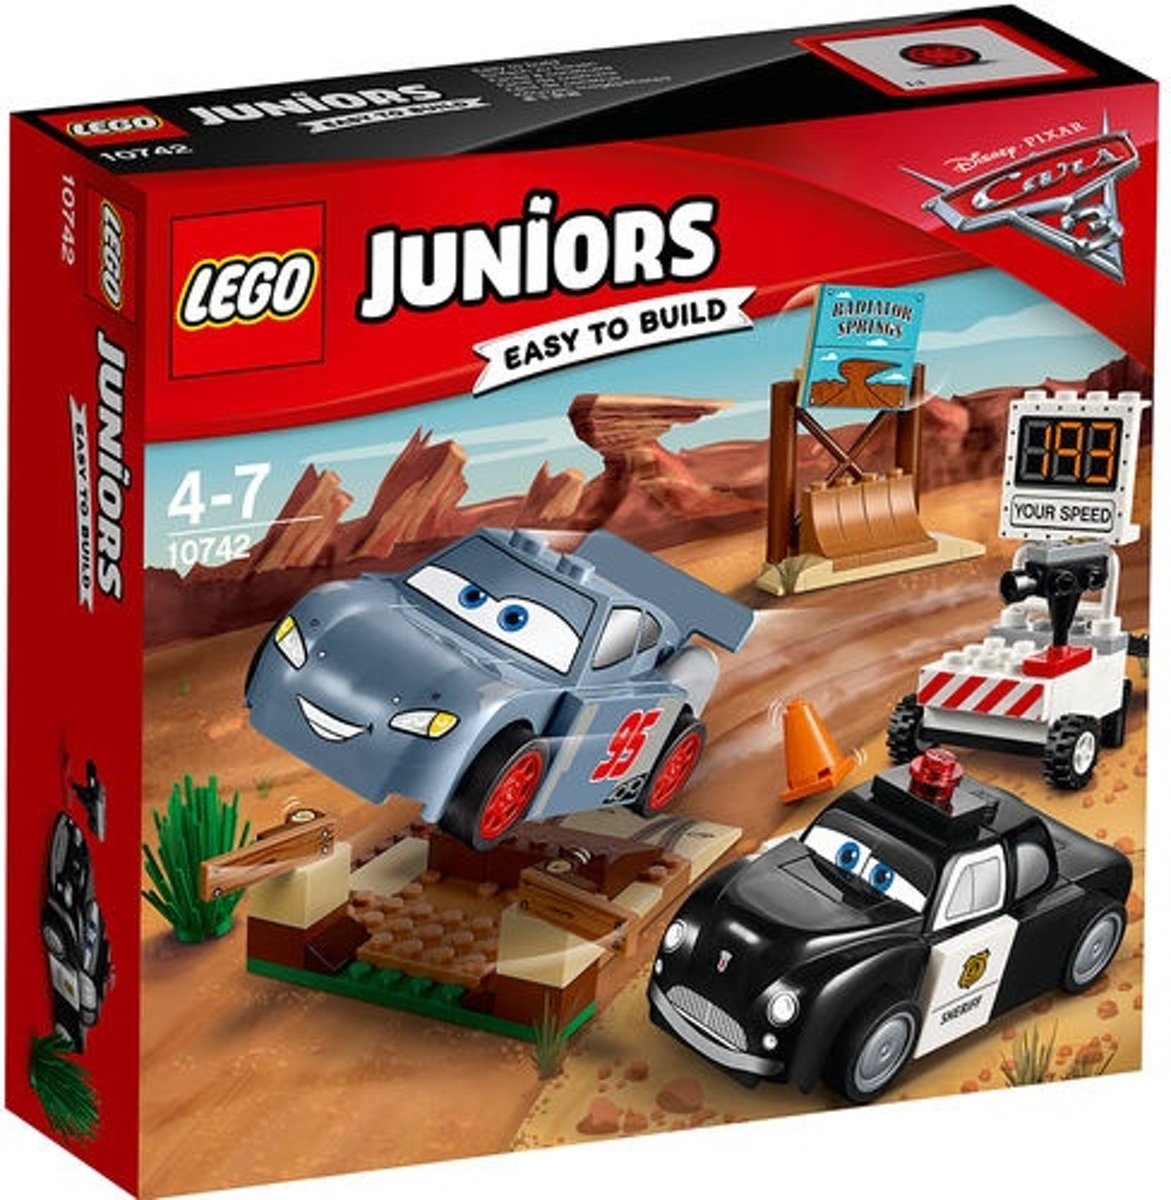 Lego Juniors: Disney Cars 3 Willys Butte Snelheidstraining (10742)